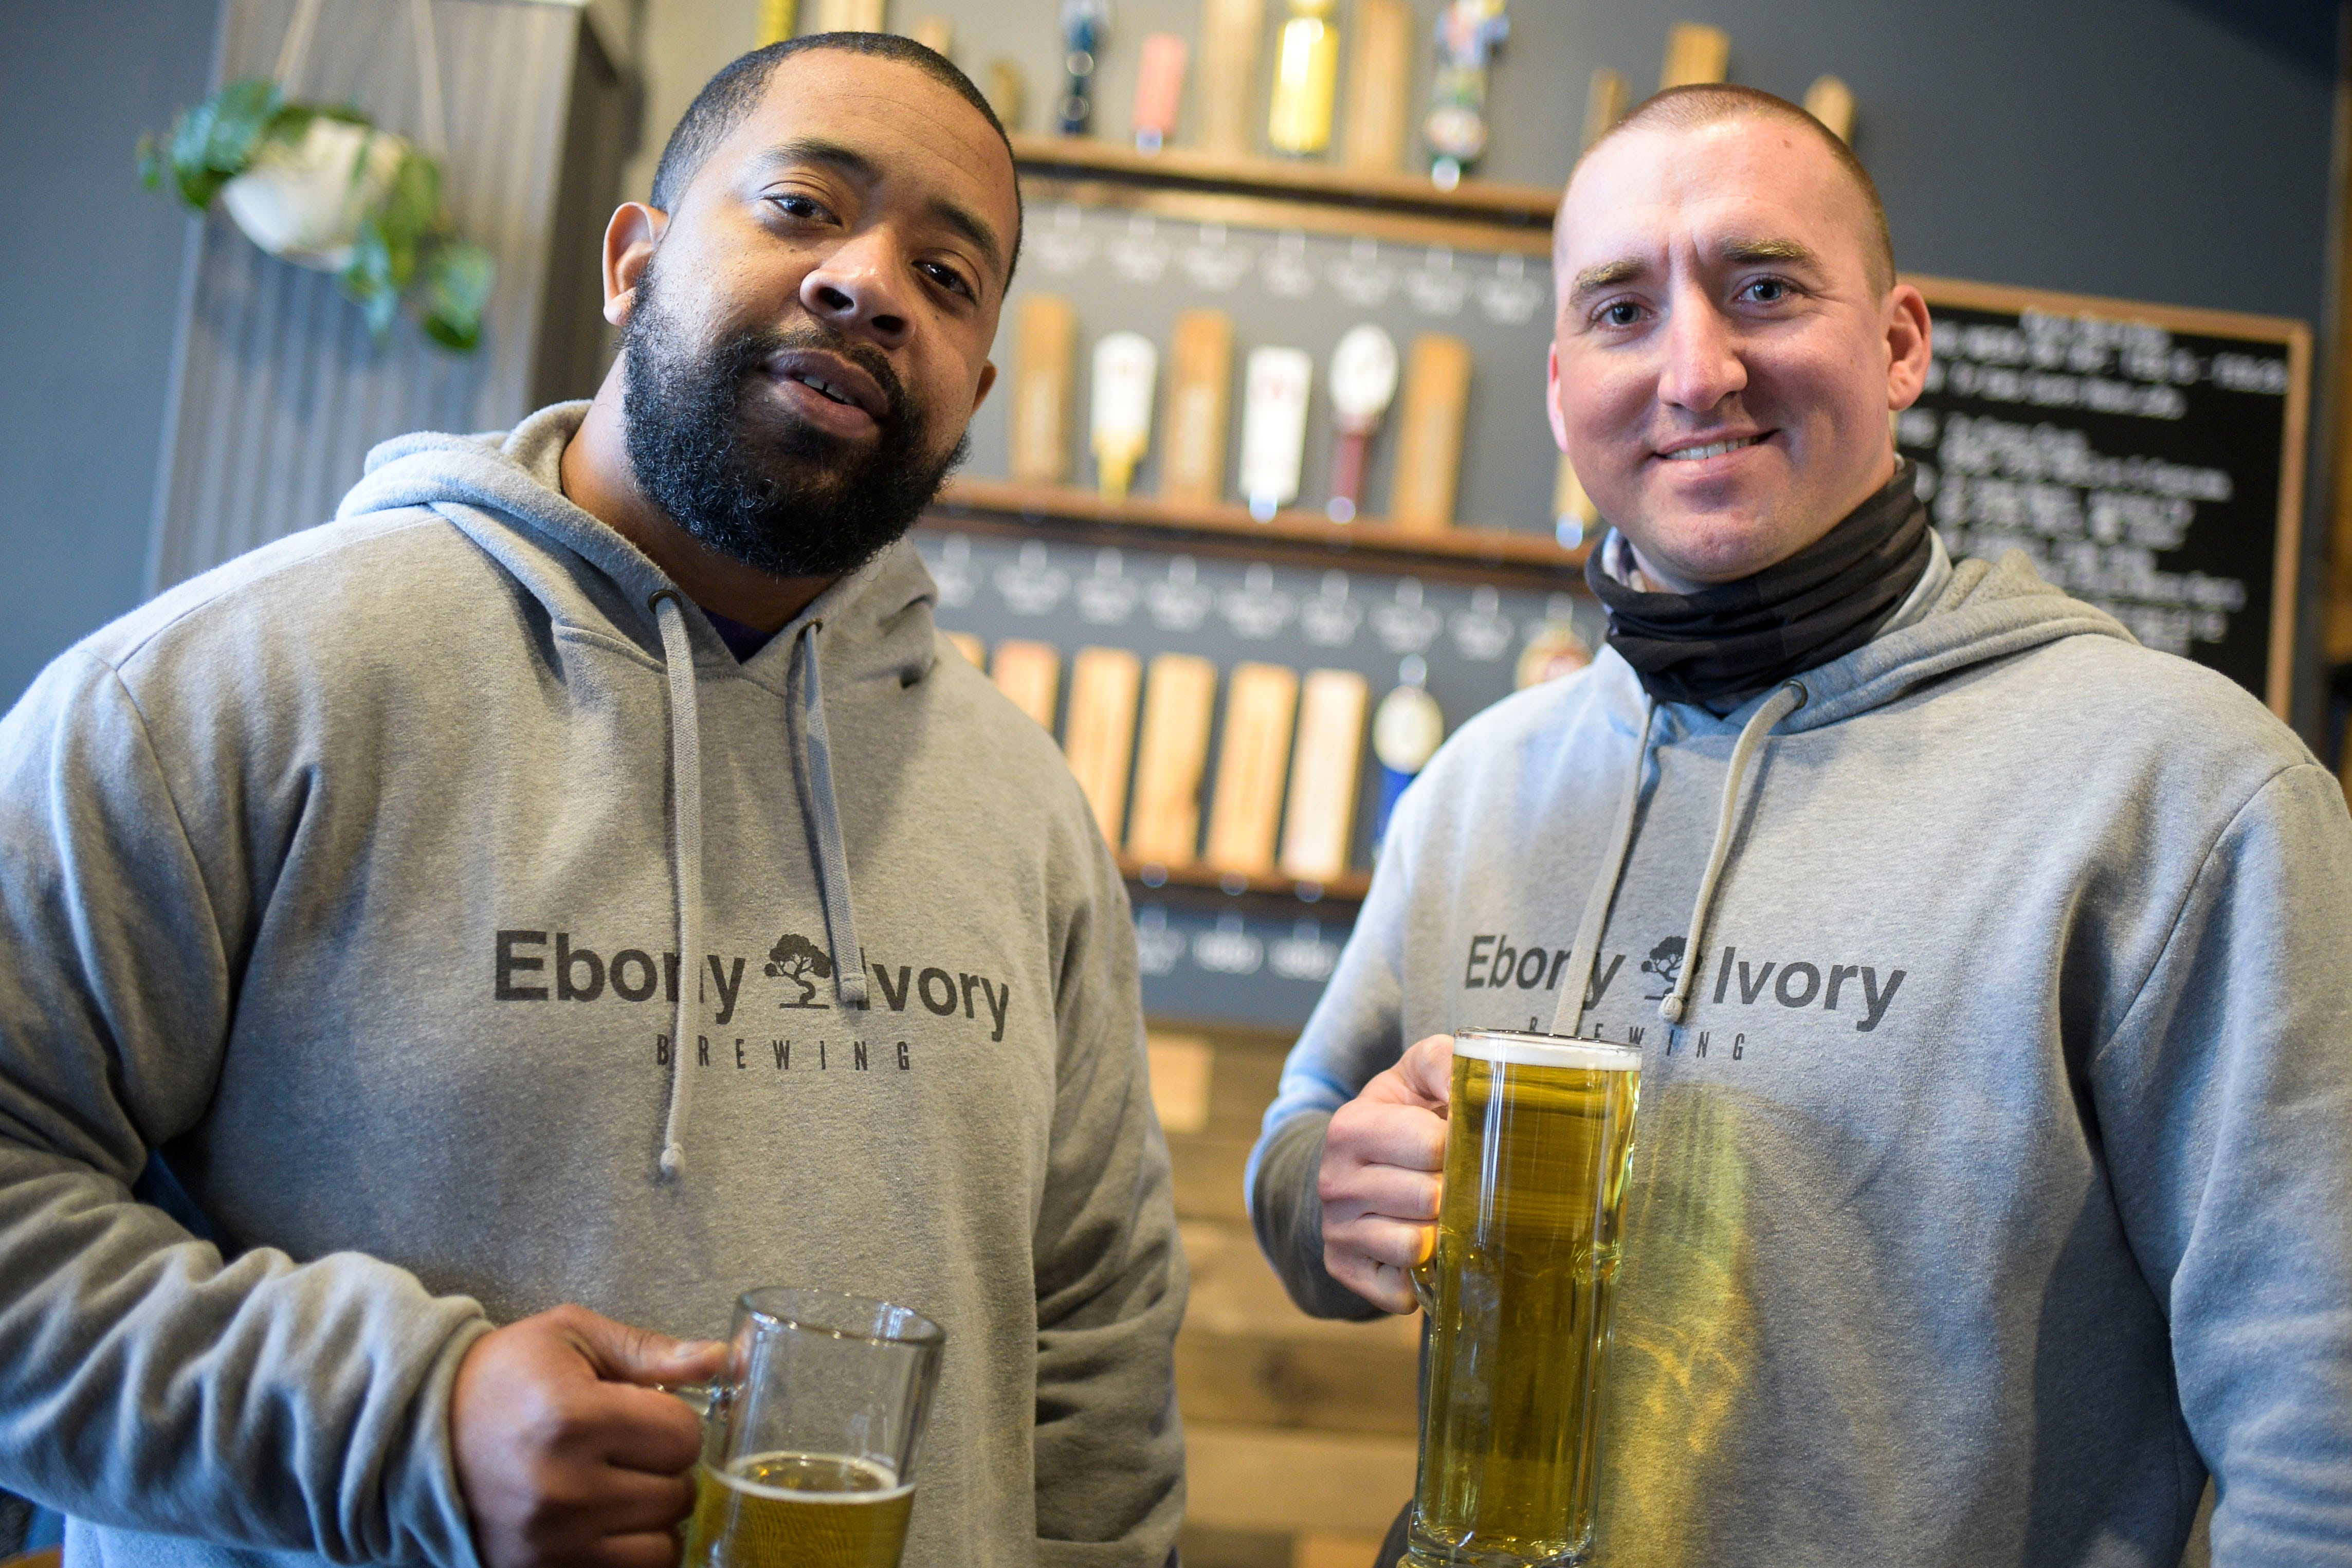 Ebony Ivory Brewing owners Chico Dupas, left, and Mitchell Russell pose for a portrait at Knox Brew Hub in downtown Knoxville, Tenn. on Saturday, Feb. 13, 2021.